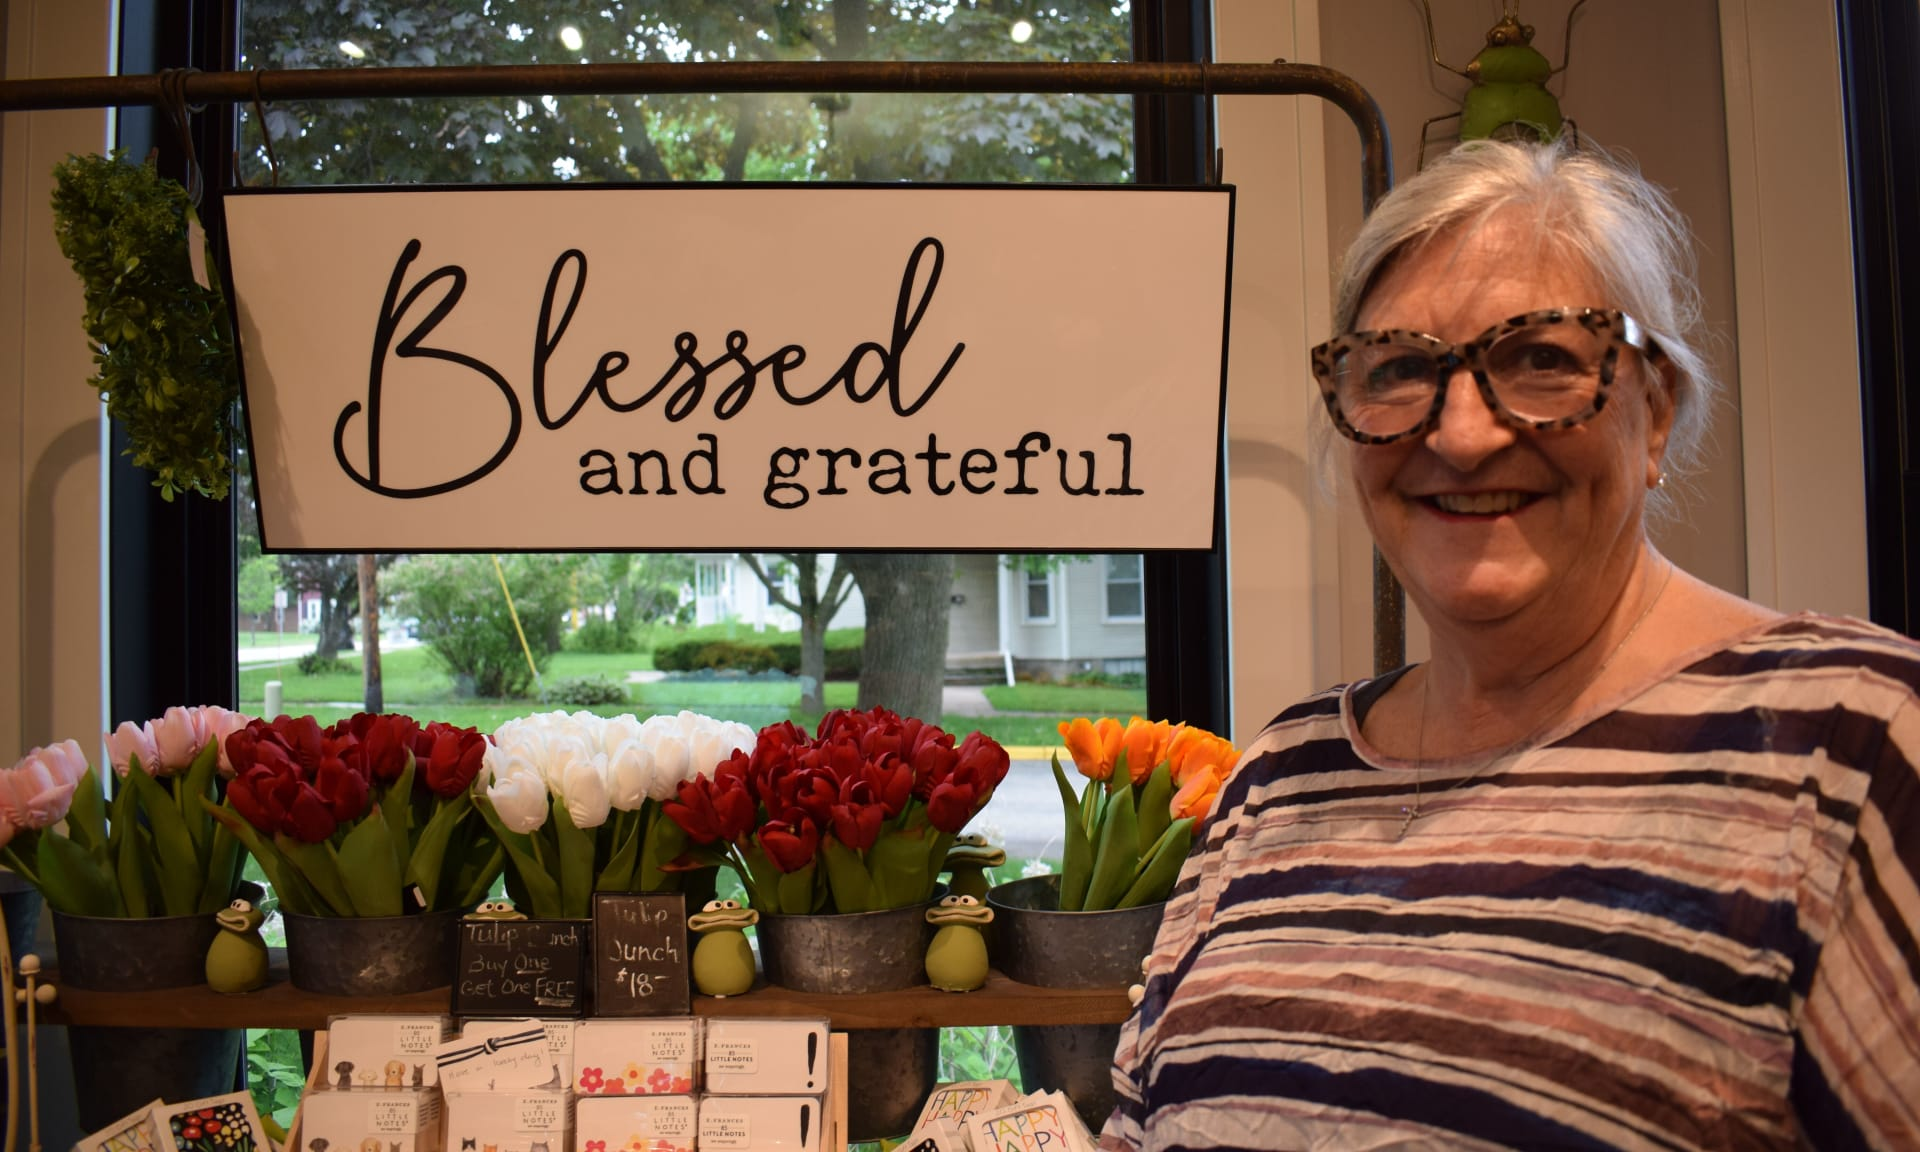 Woman smiling next to sign reading Blessed and grateful